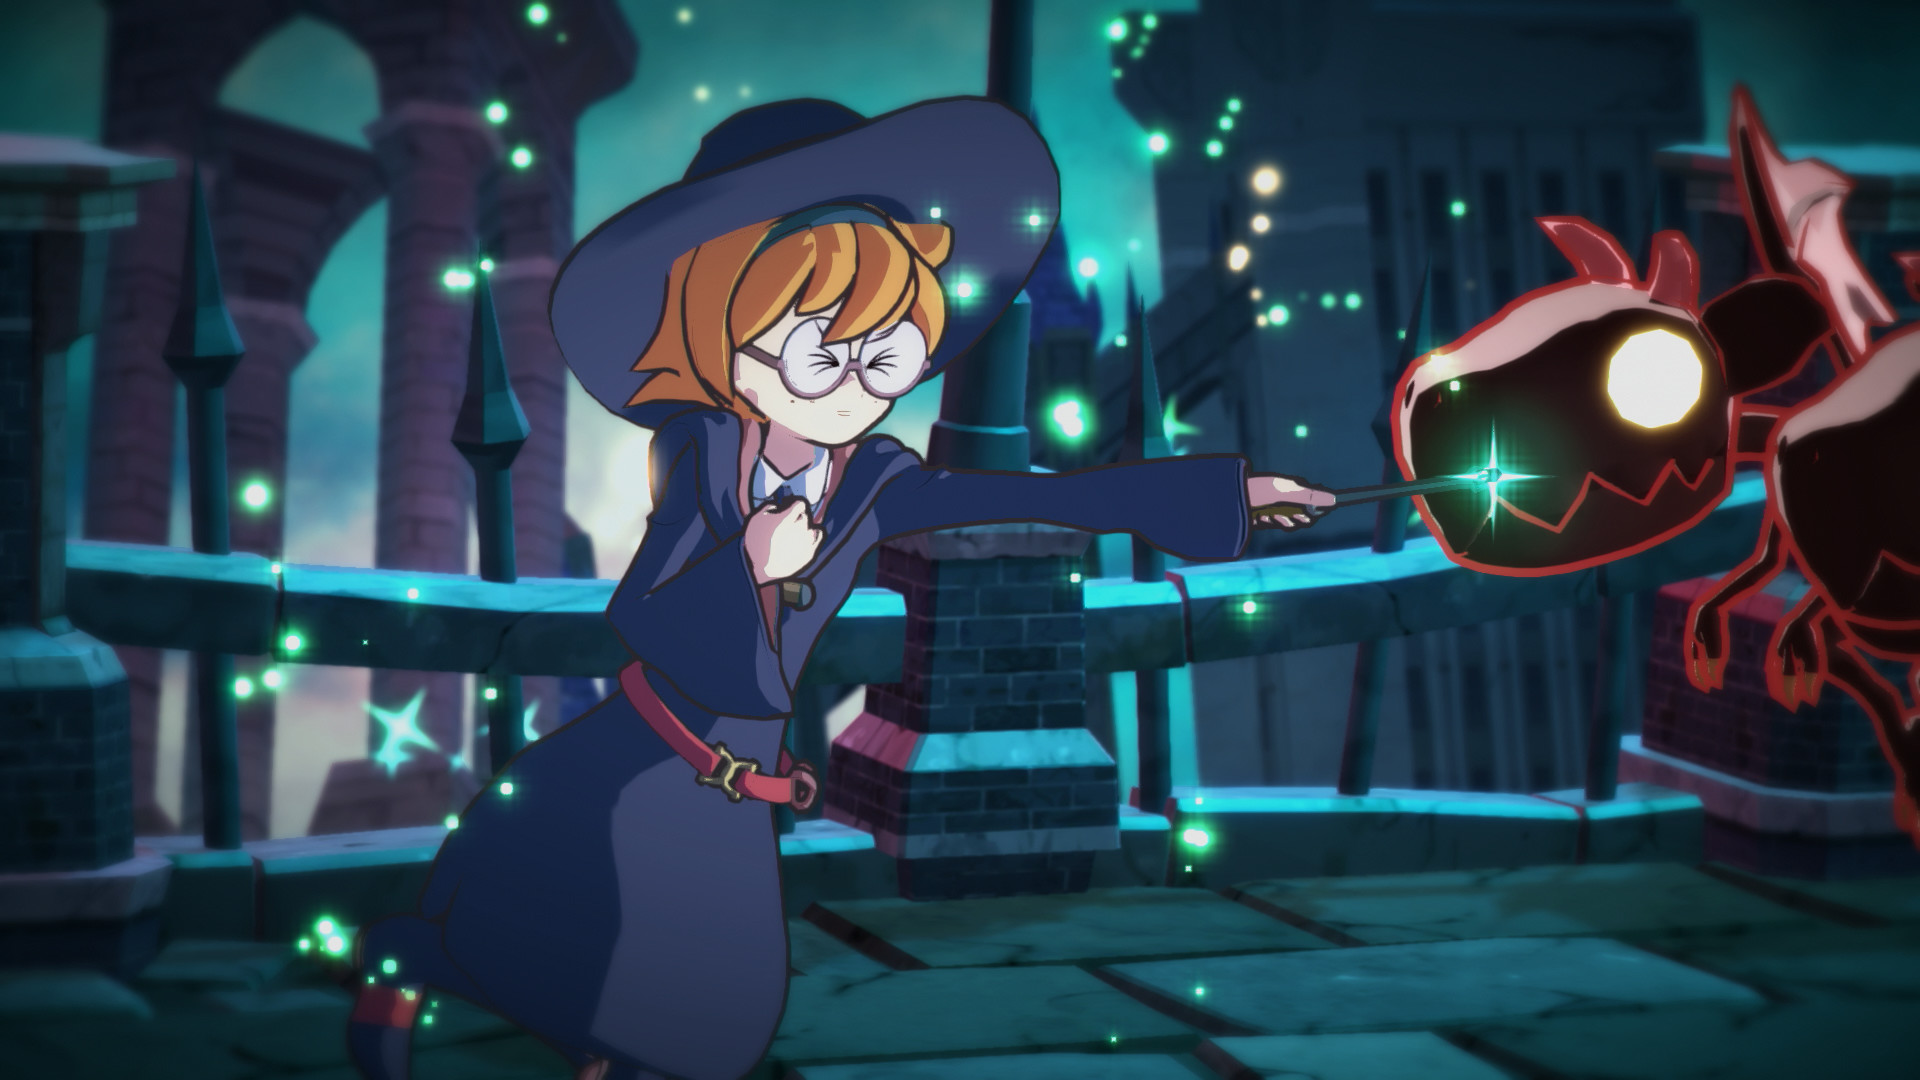 KHAiHOM.com - Little Witch Academia: Chamber of Time